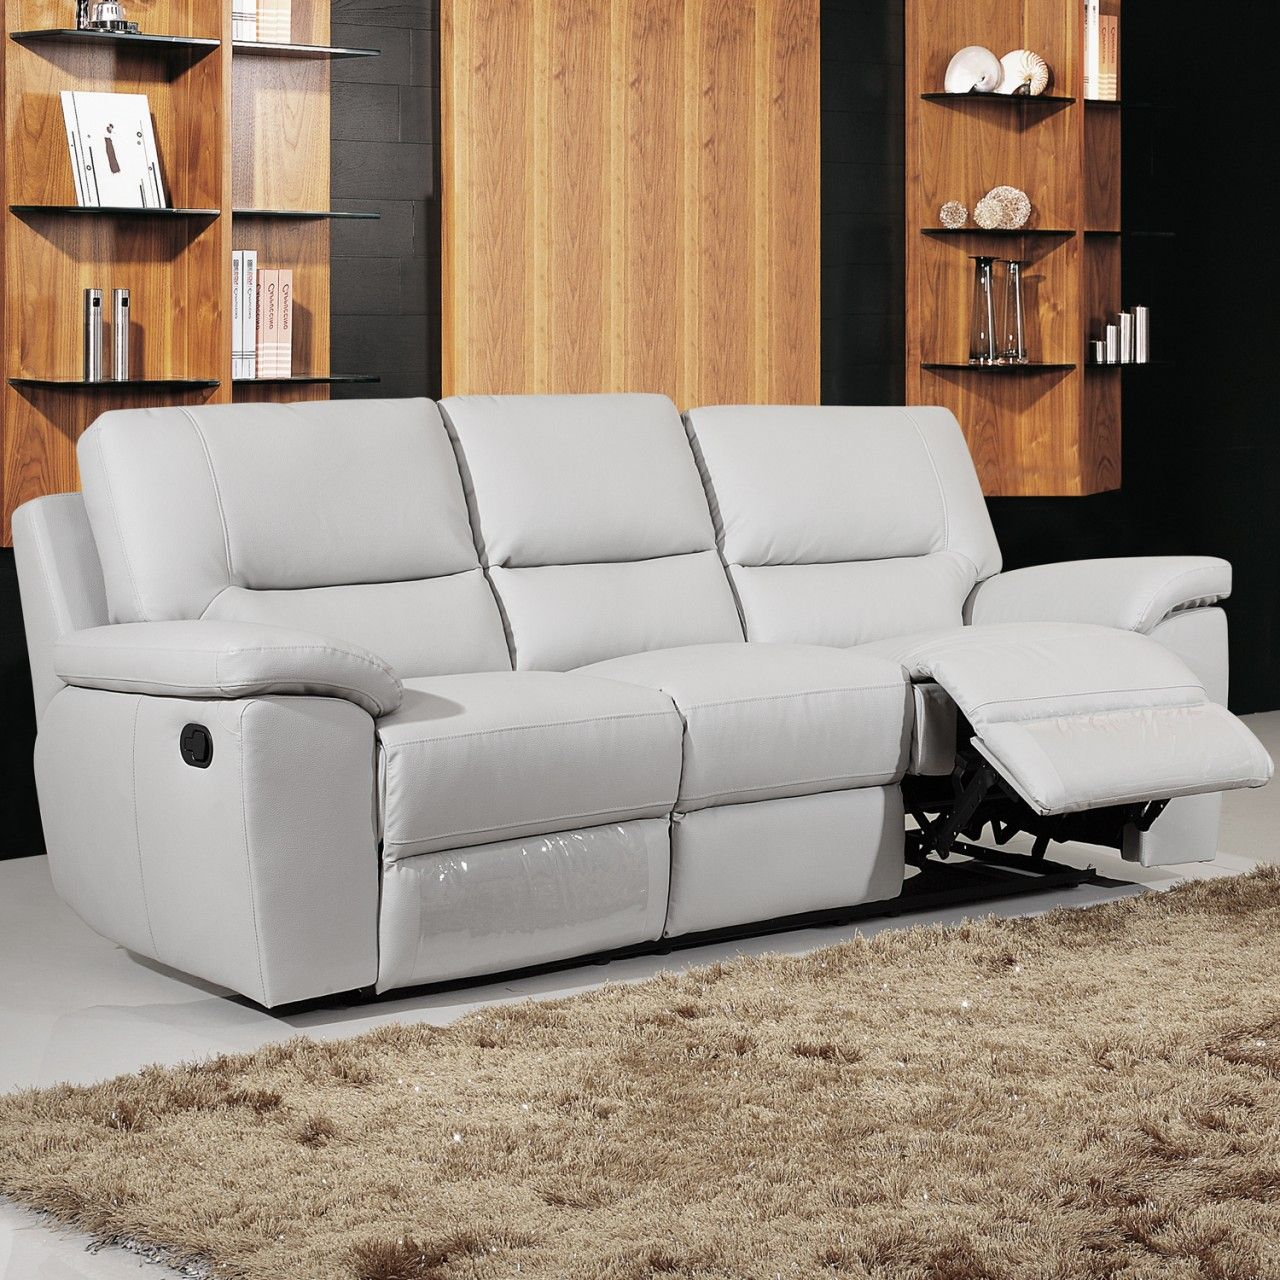 gray leather sofa recliner Grey leather reclining sofa